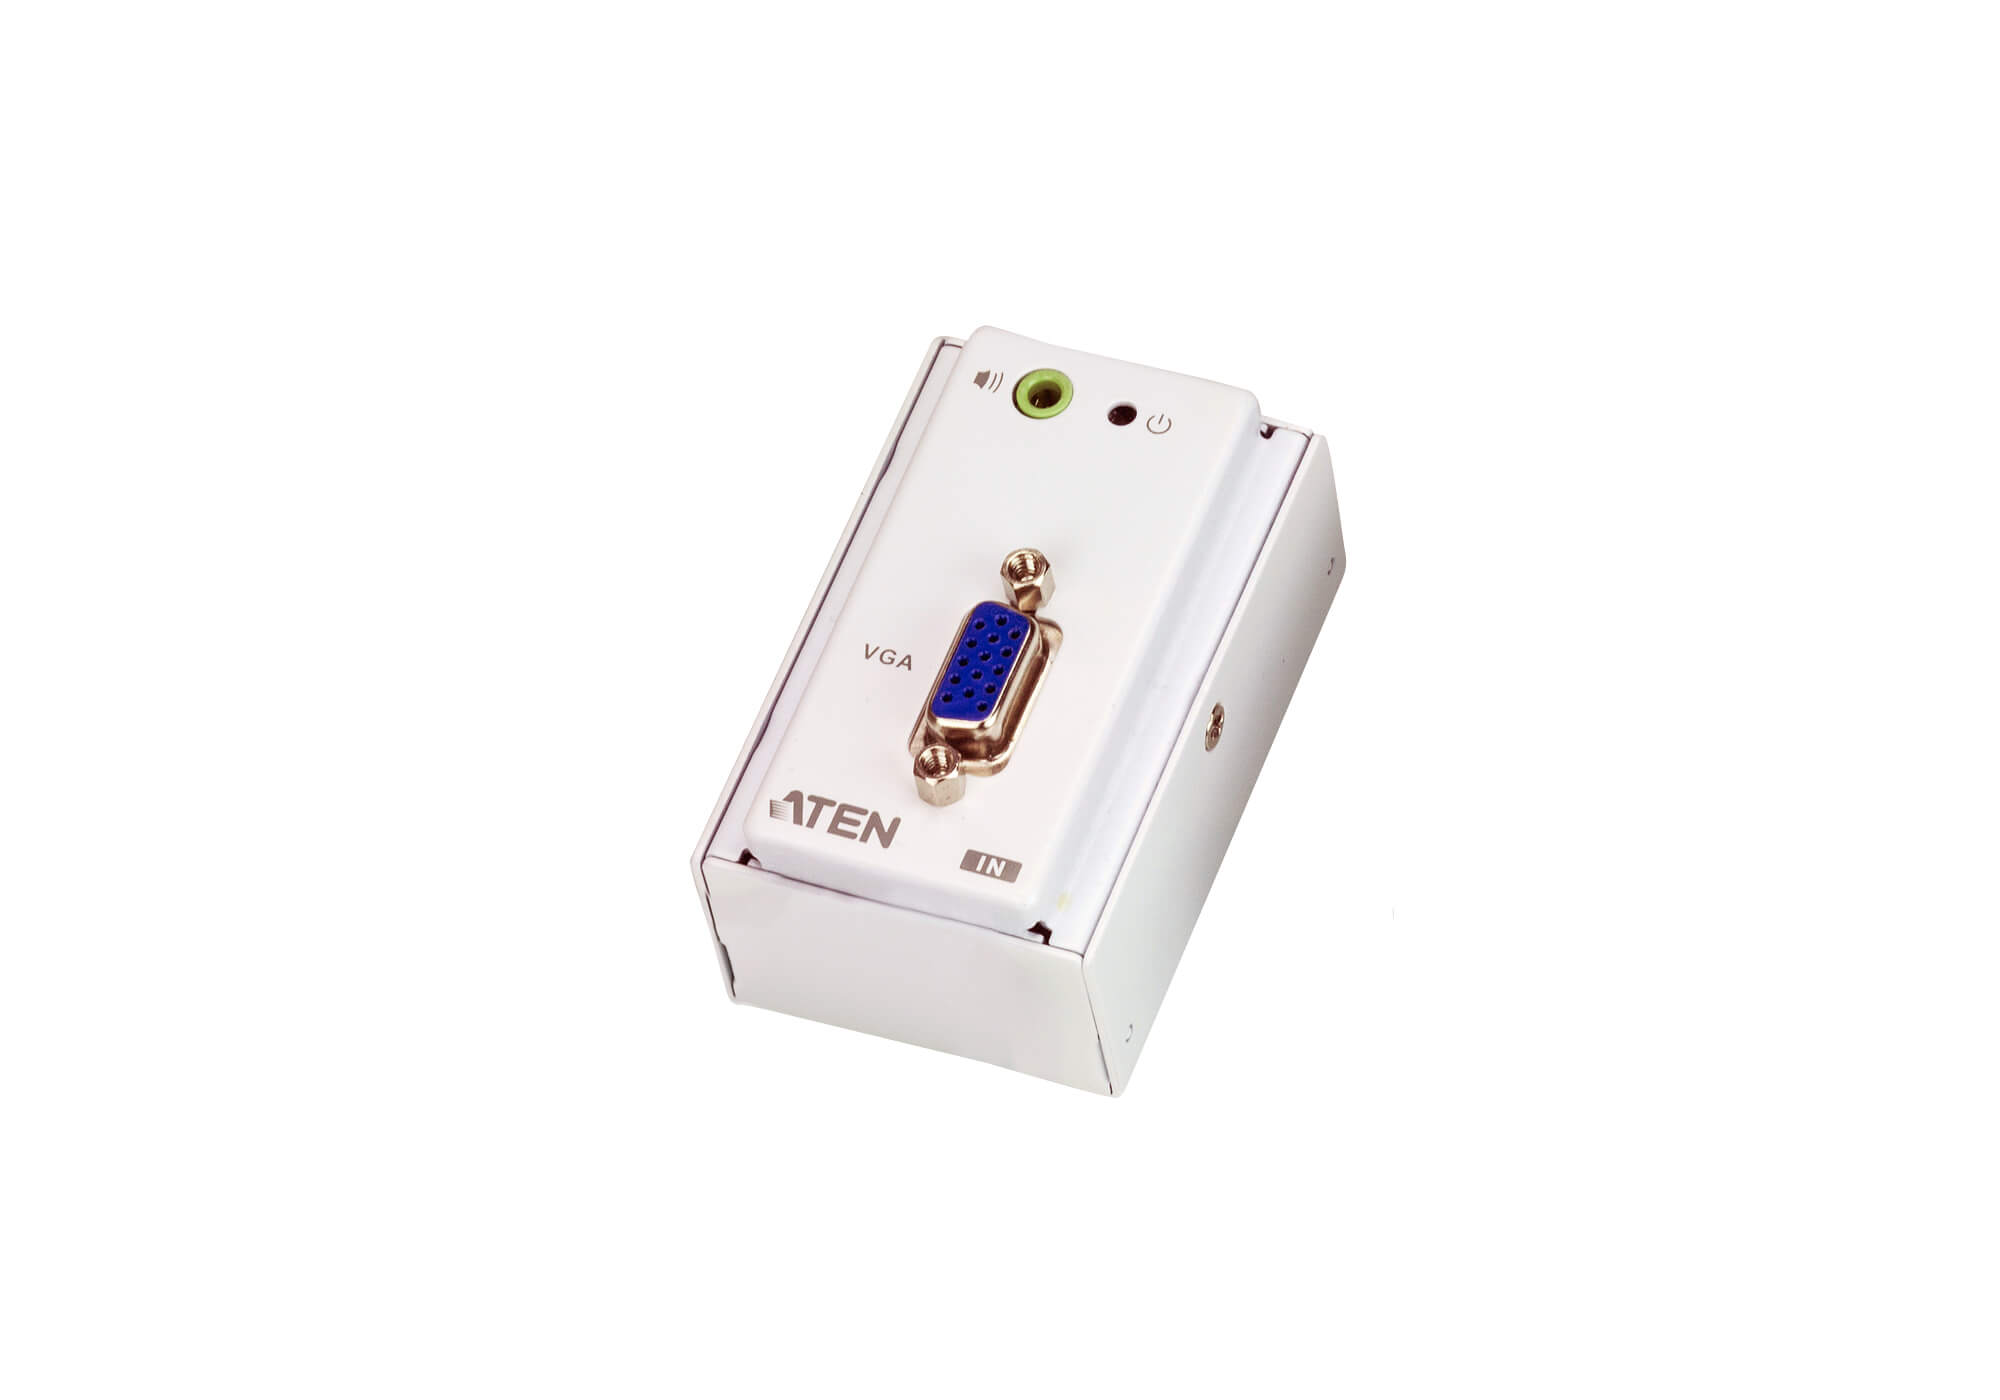 VGA/Audio Cat 5 Extender with MK Wall Plate (1280 x 1024 @150 m)-3